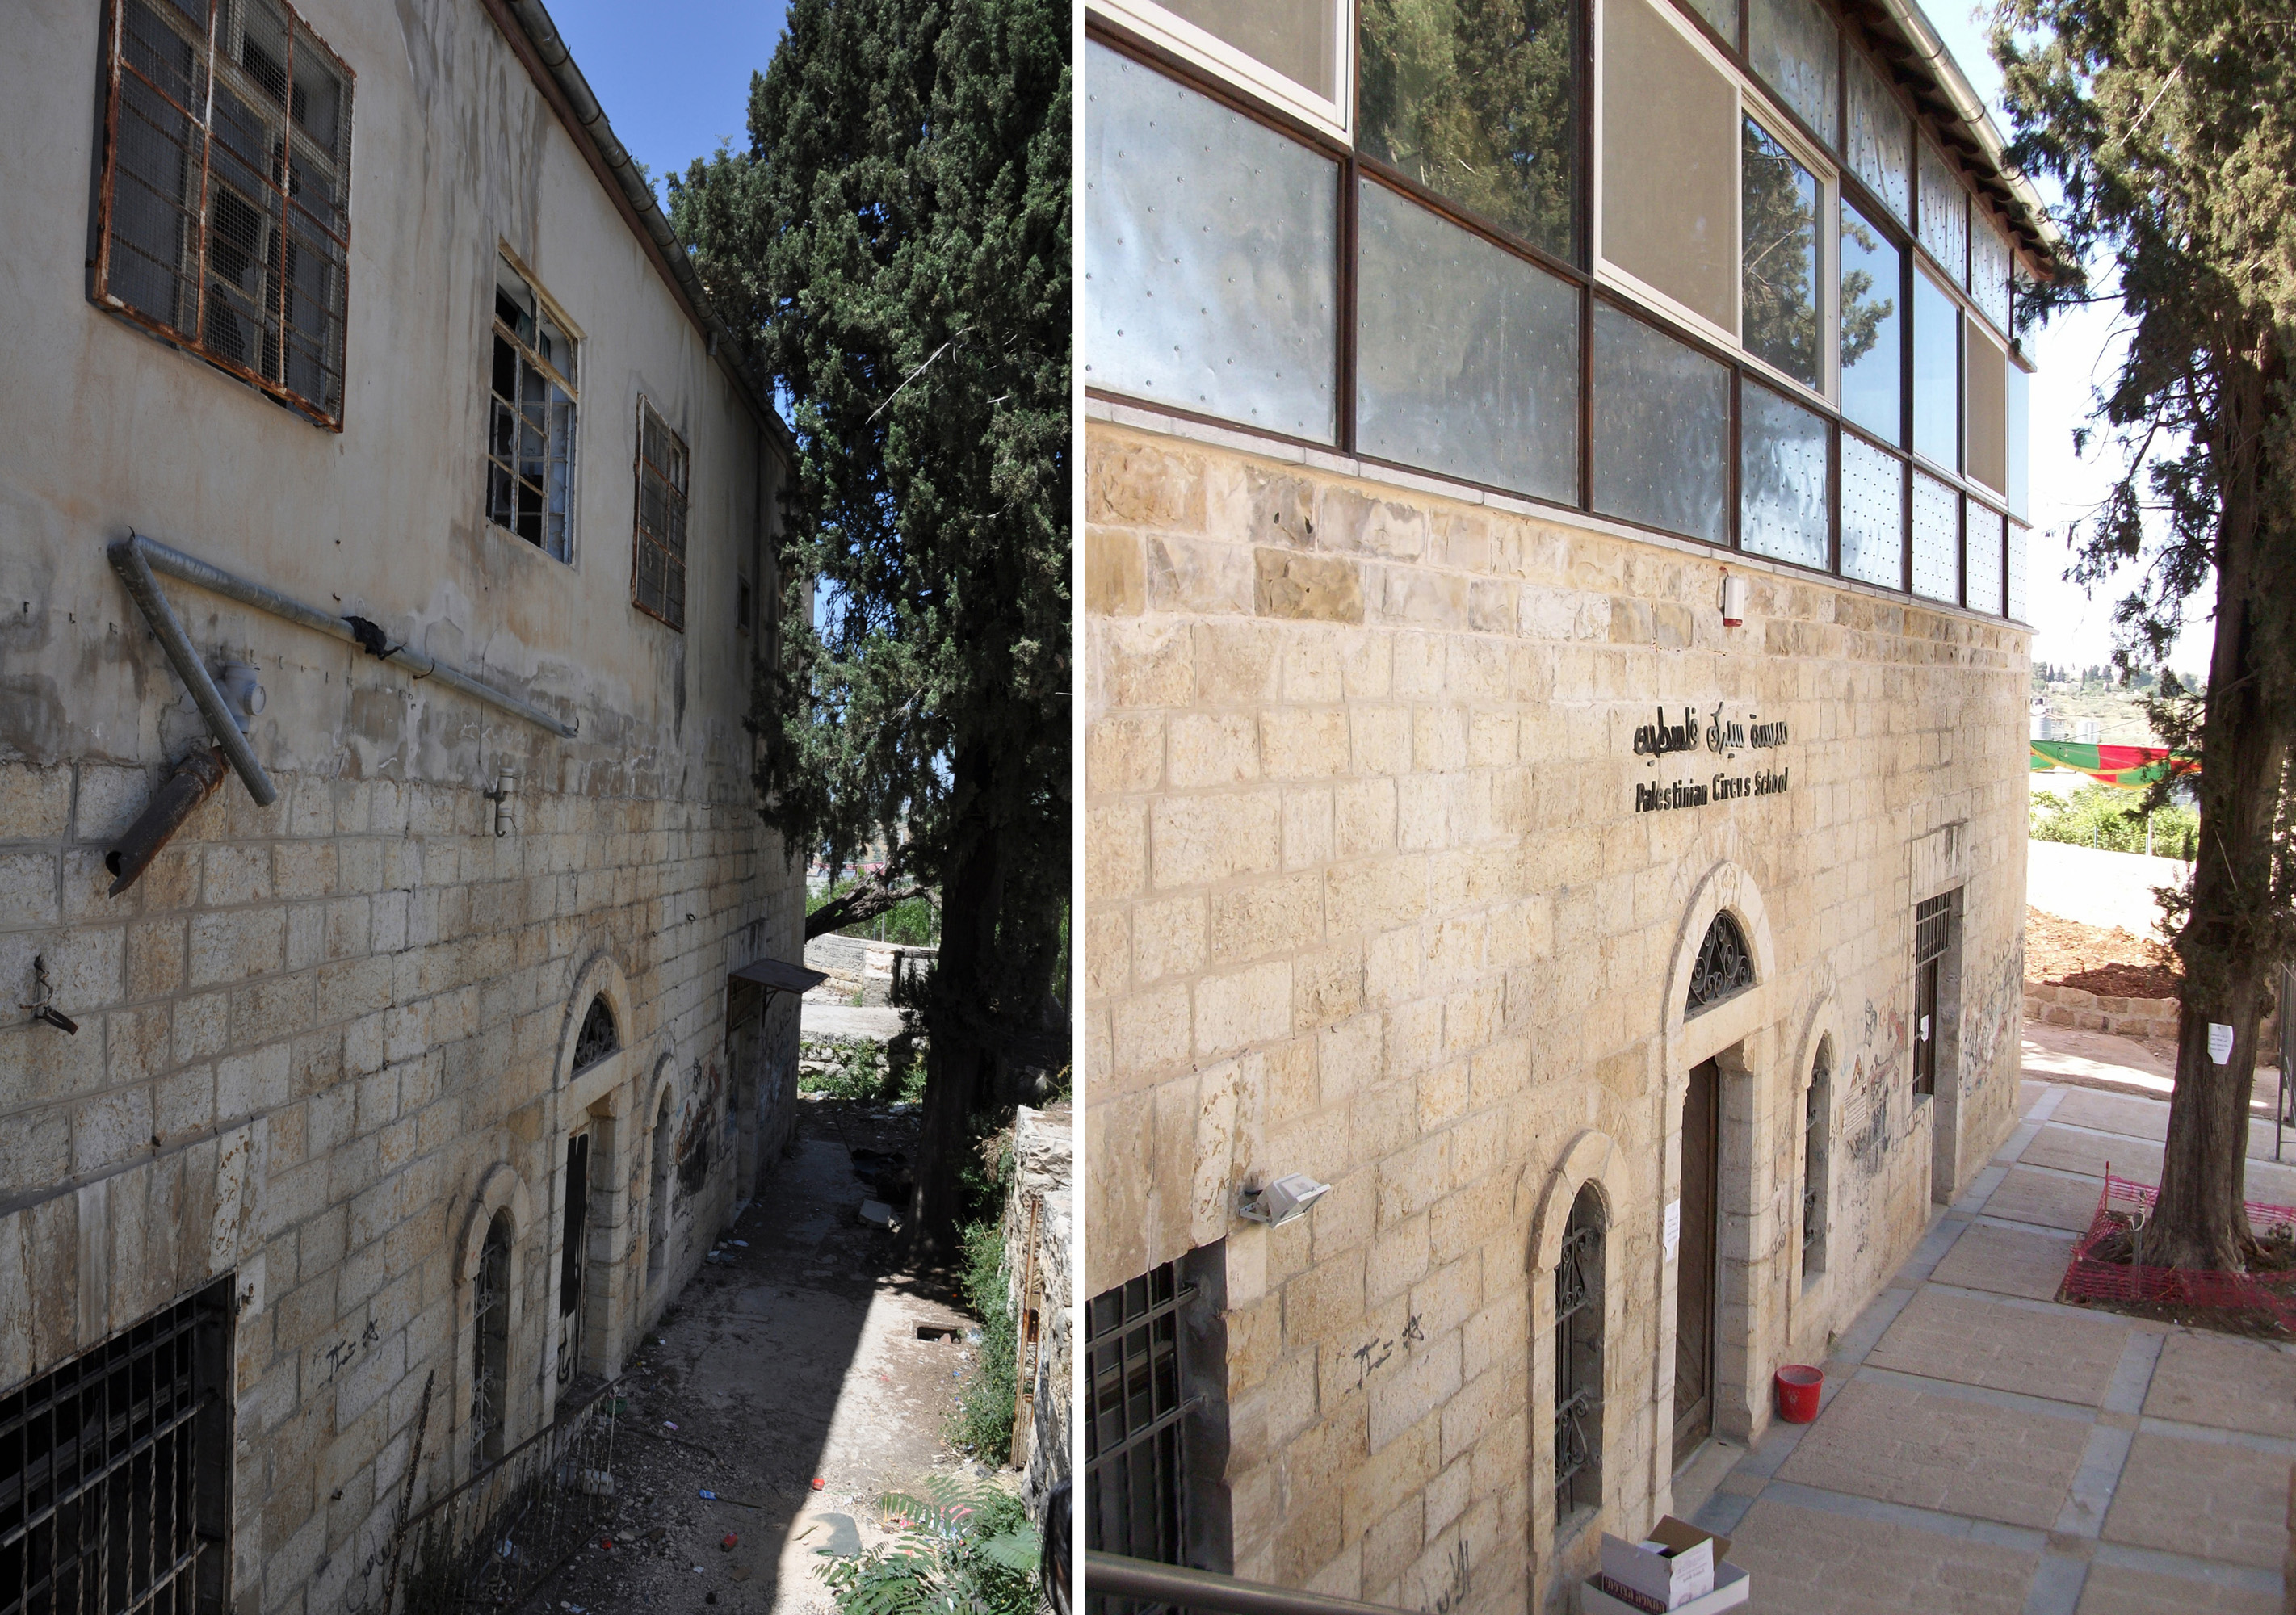 Palestinian circus school (before and after restoration) - AKAA Riwaq